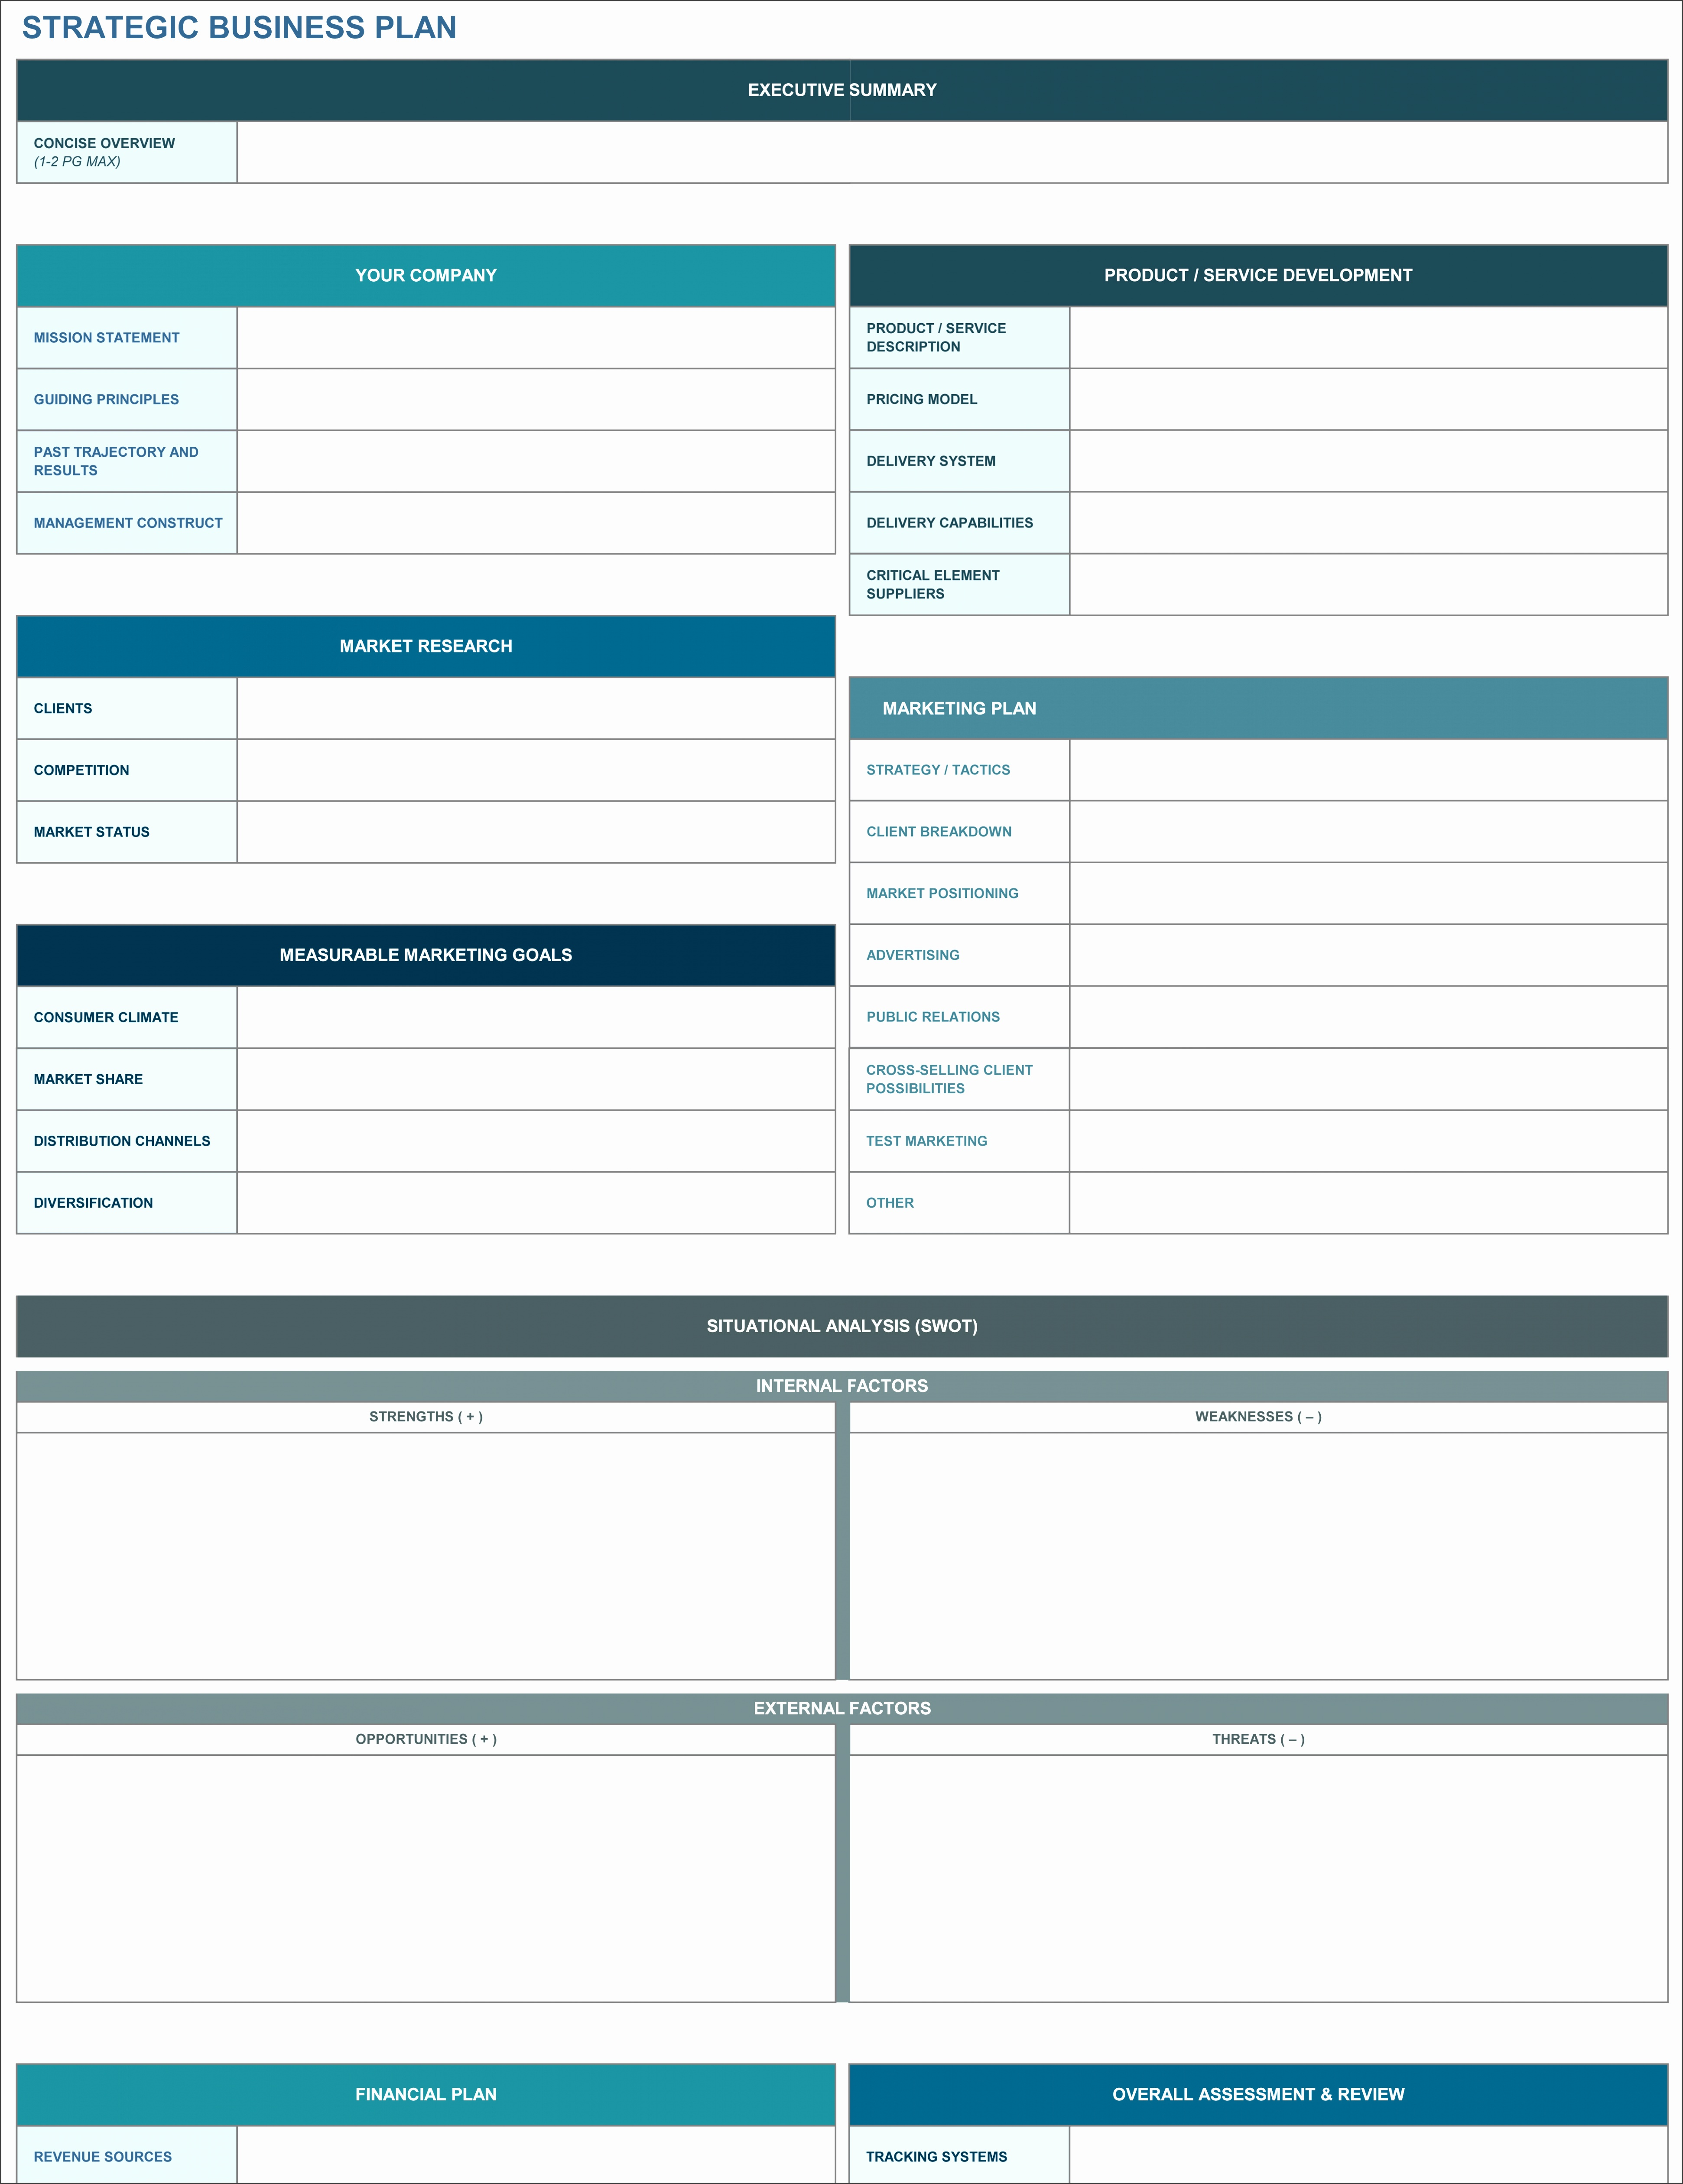 Download Strategic Business Plan Template